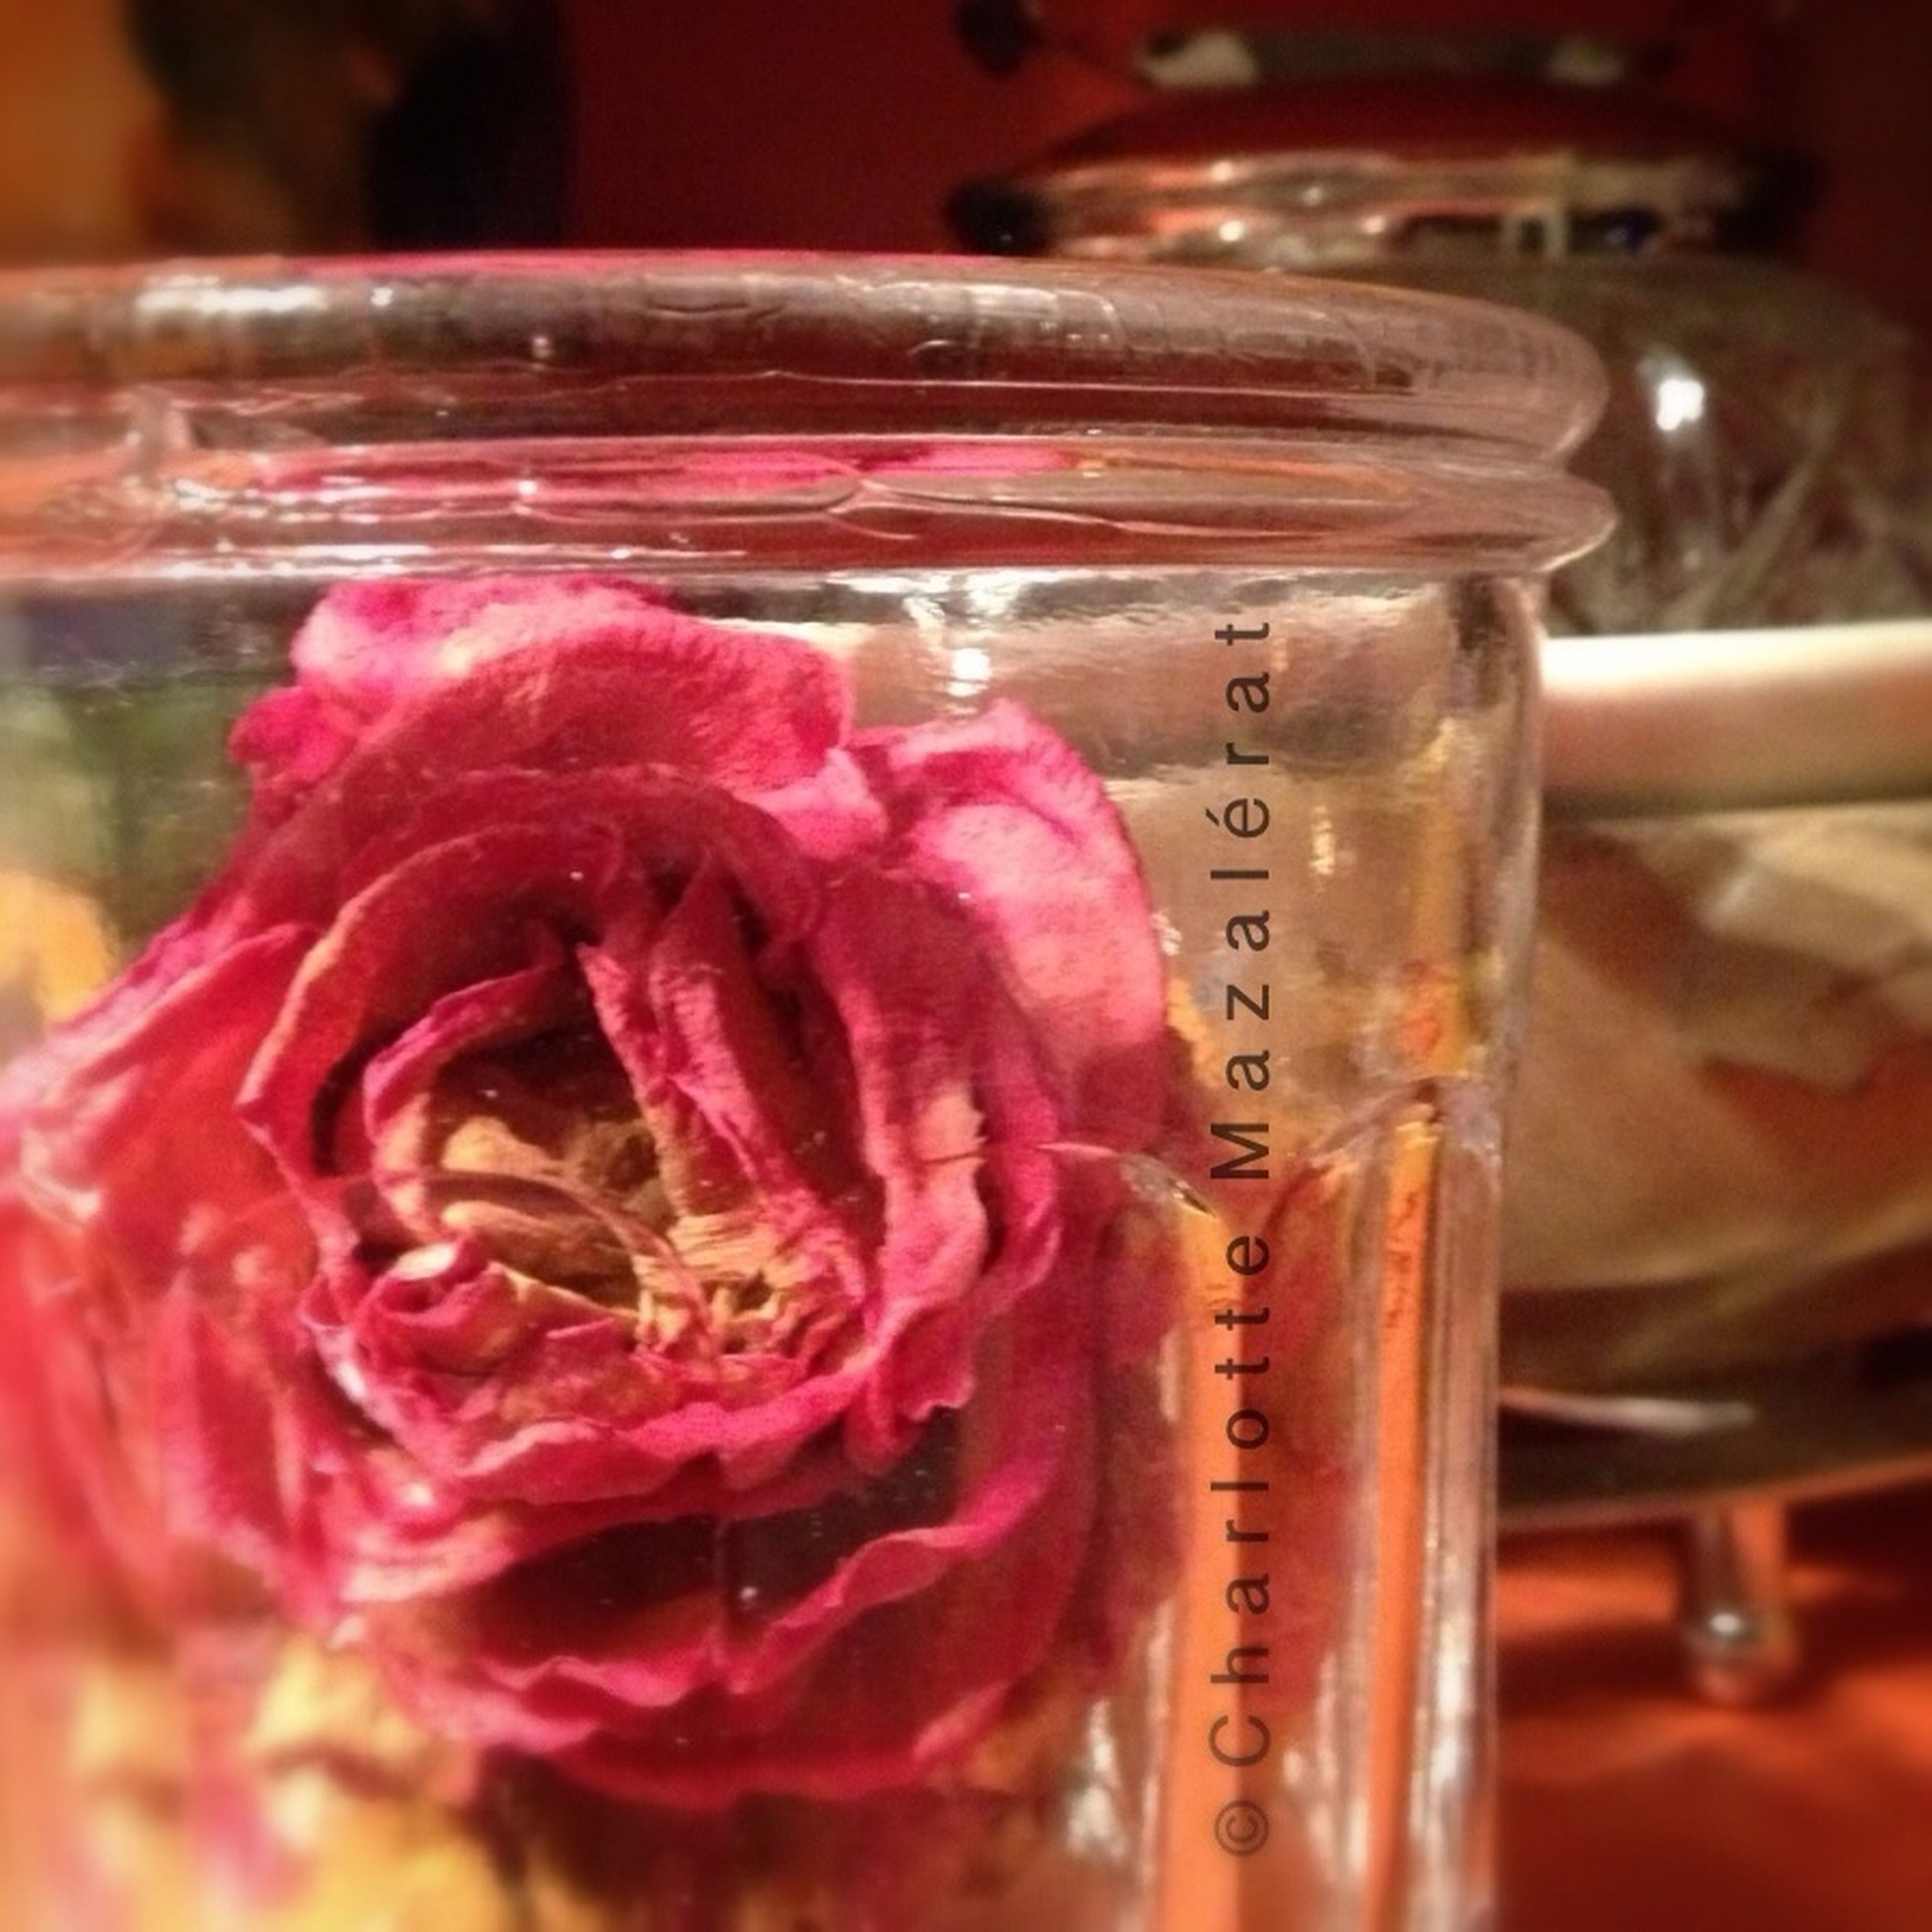 indoors, close-up, focus on foreground, text, pink color, freshness, selective focus, glass - material, table, western script, flower, still life, red, transparent, no people, communication, fragility, food and drink, reflection, day